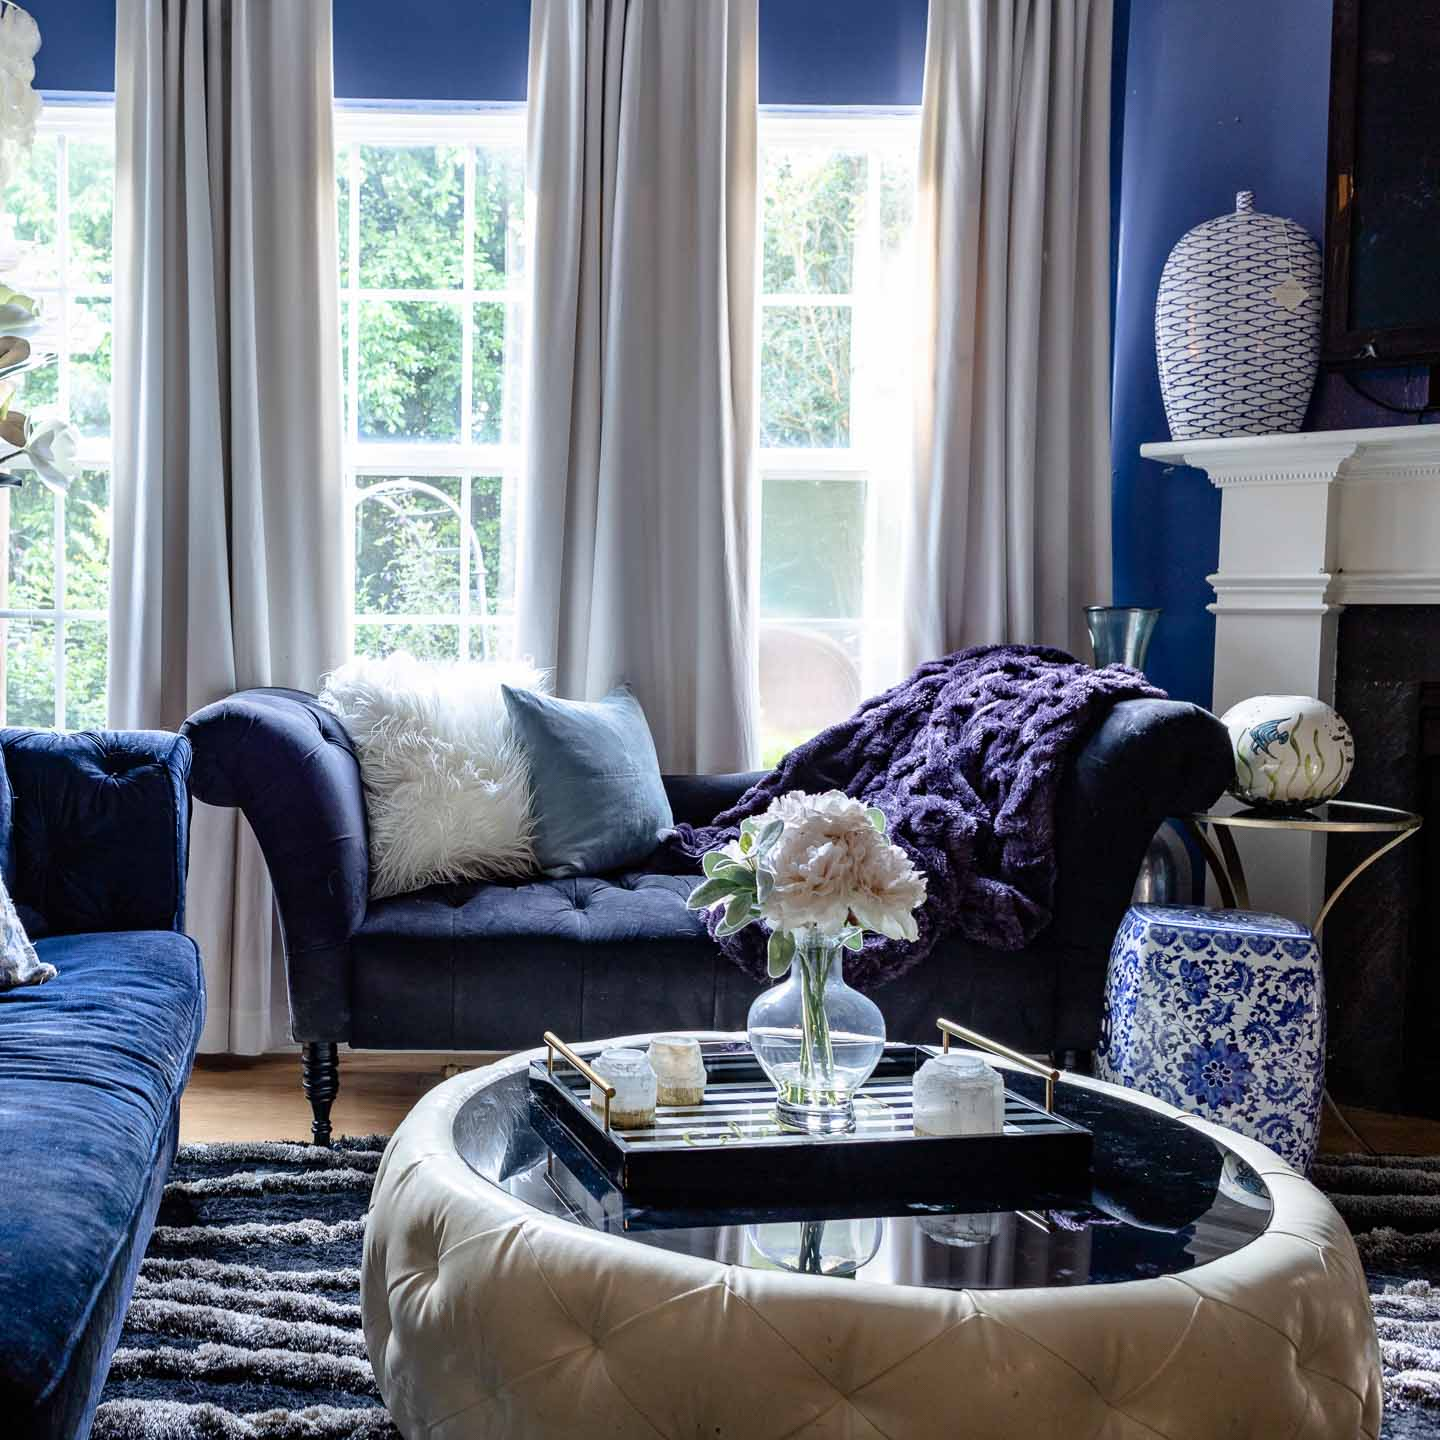 Home Design Ideas Photo Gallery: Blue And White Decorating Ideas: 10 Ways To Decorate With